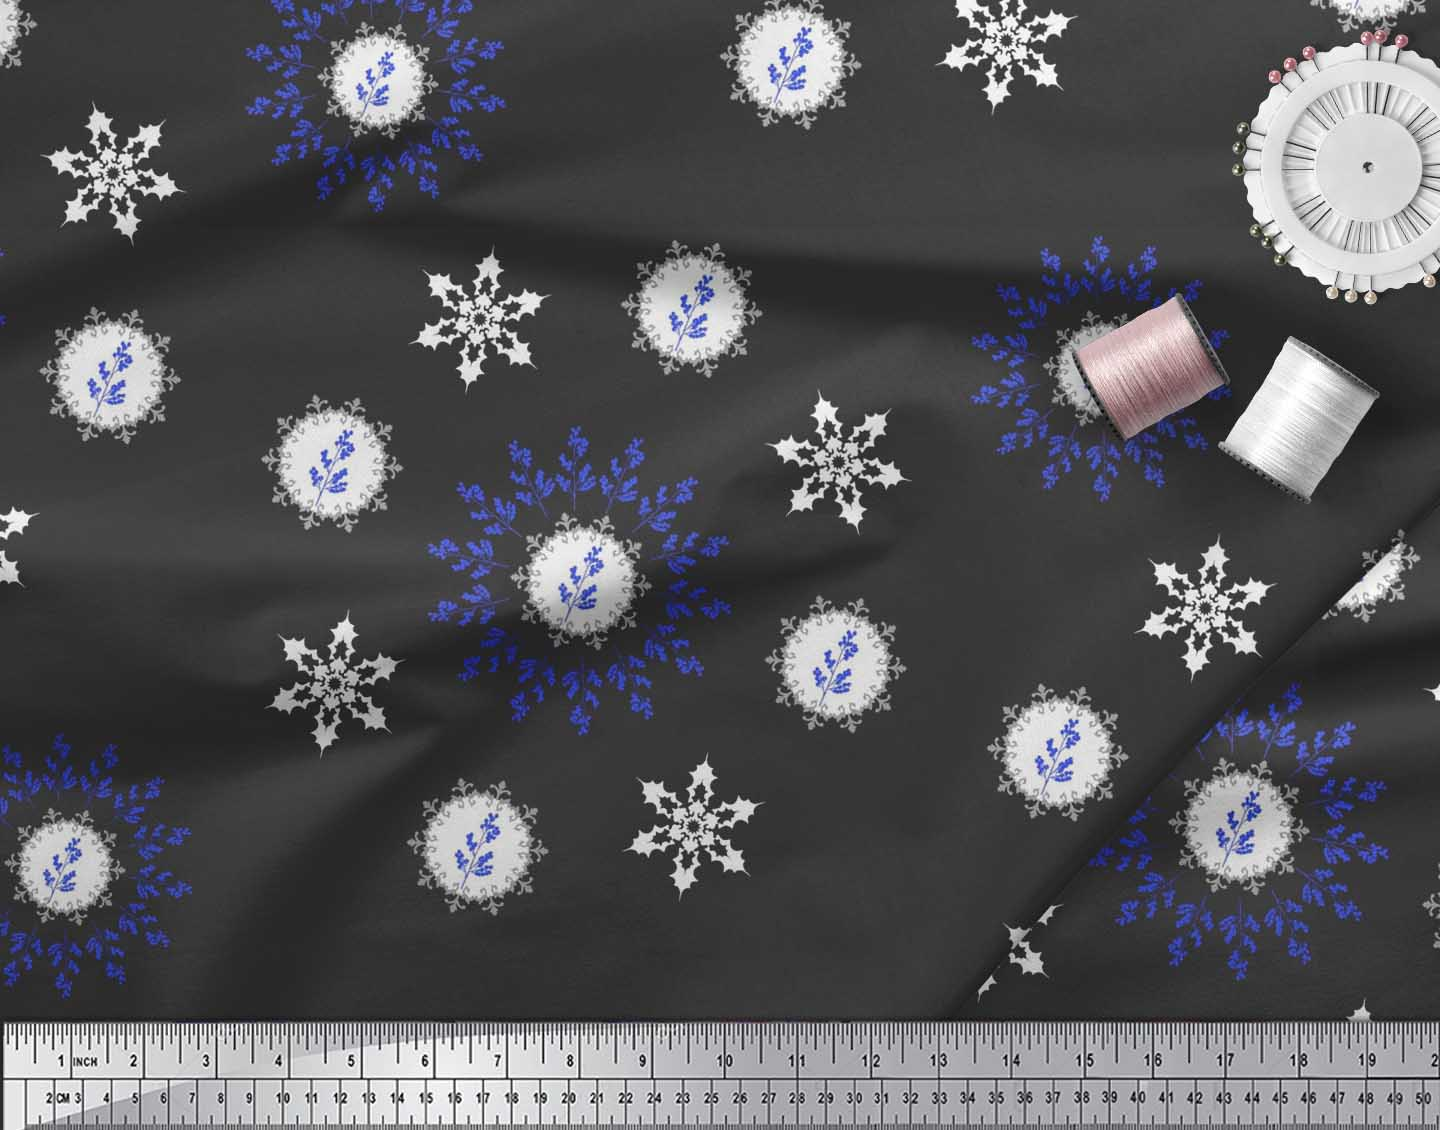 Soimoi-Fabric-Berries-amp-Damask-Decorative-Printed-Craft-Fabric-bty-DC-513A thumbnail 4